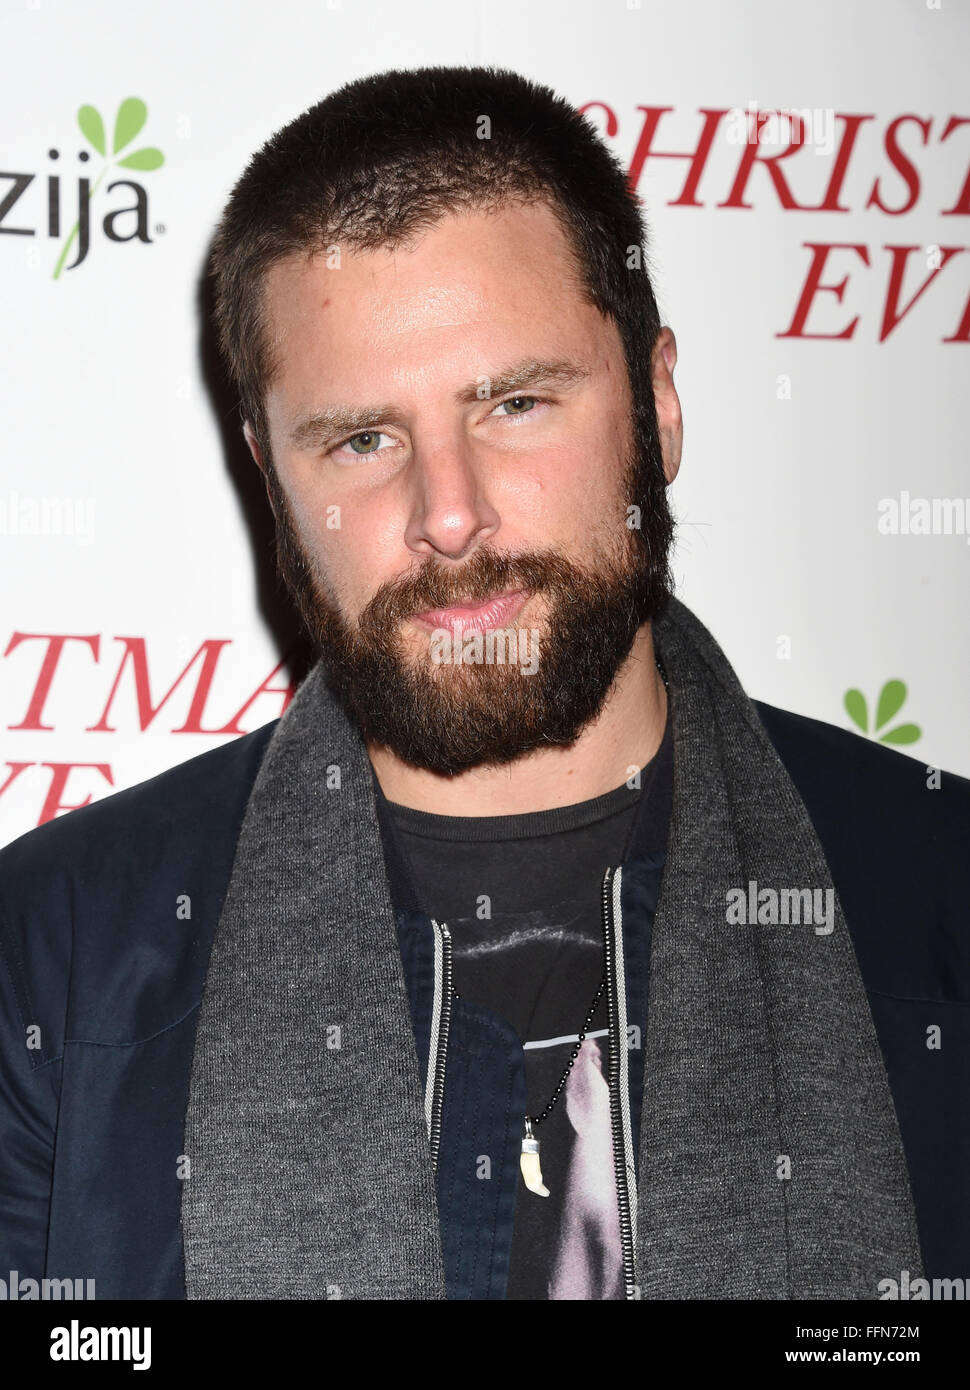 Actor James Roday arrives at the premiere of Unstuck's 'Christmas Eve' at the ArcLight Hollywood on - Stock Image